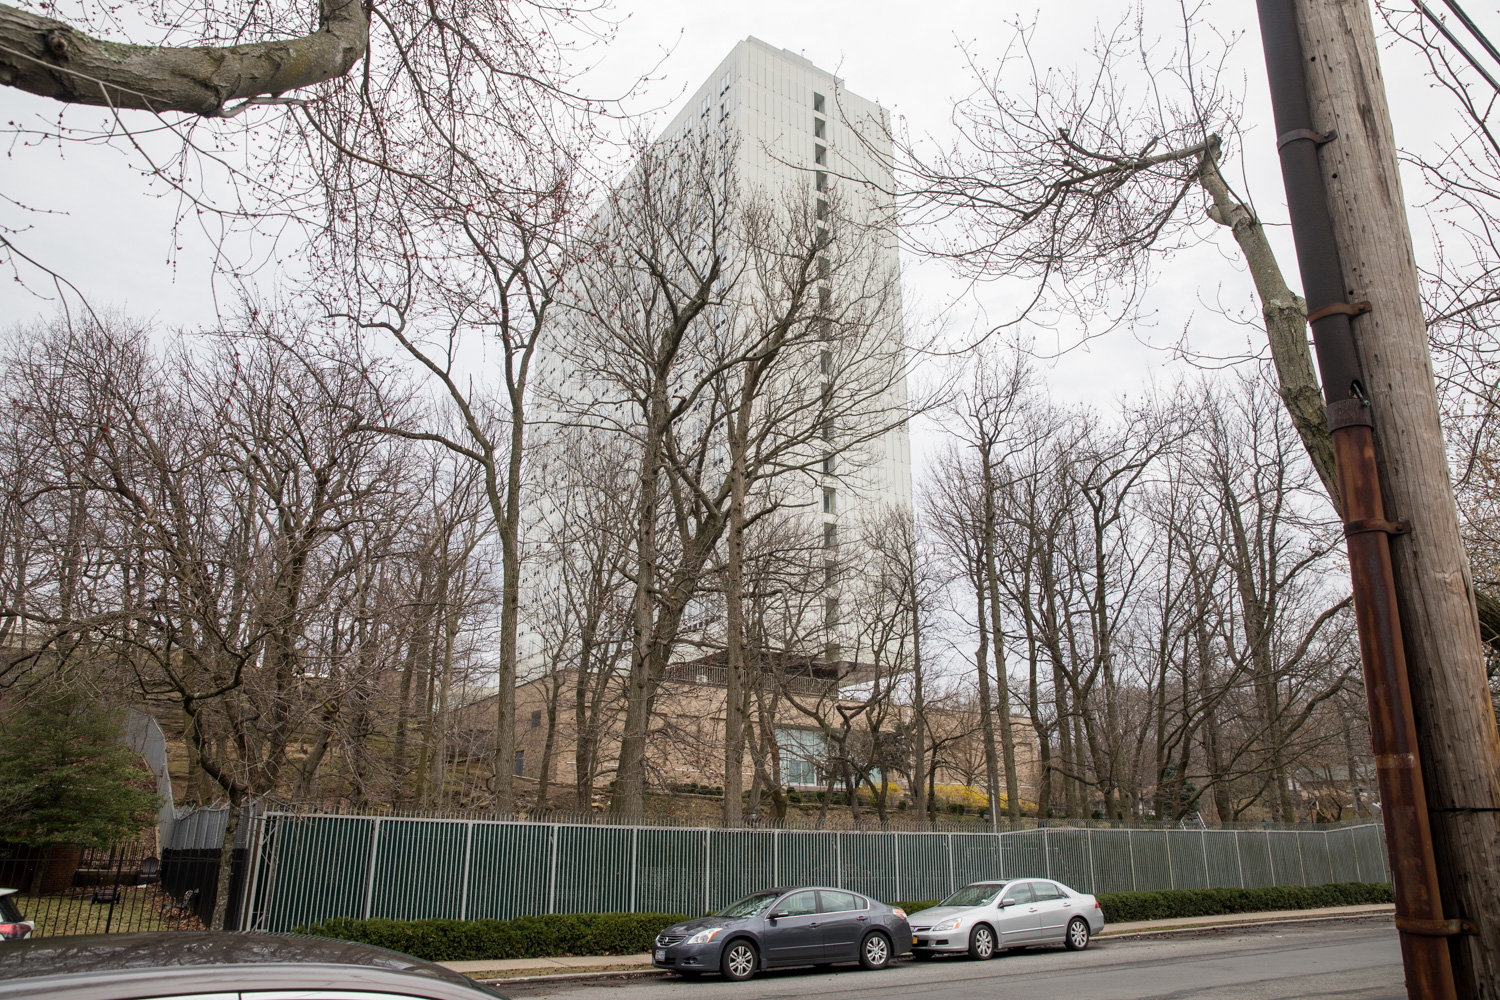 The Russian Mission looms large over Mosholu Avenue. It was built by the Soviet Union from the top down in 1974.